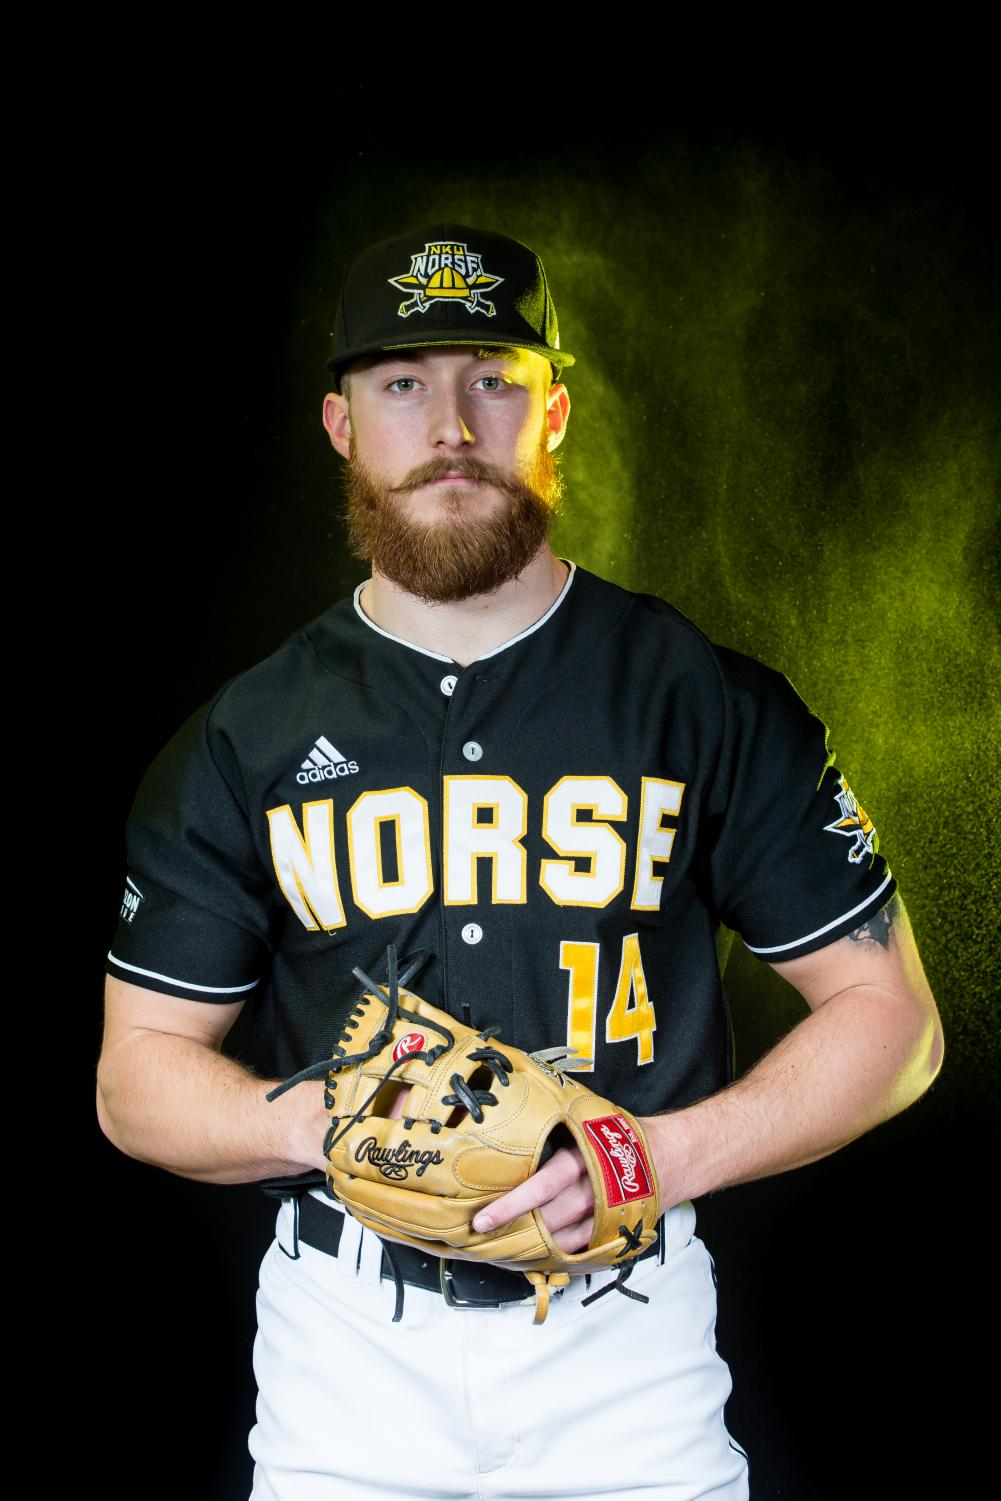 Cameron Ross will begin the season as starting pitcher after being the Norse closer in 2017